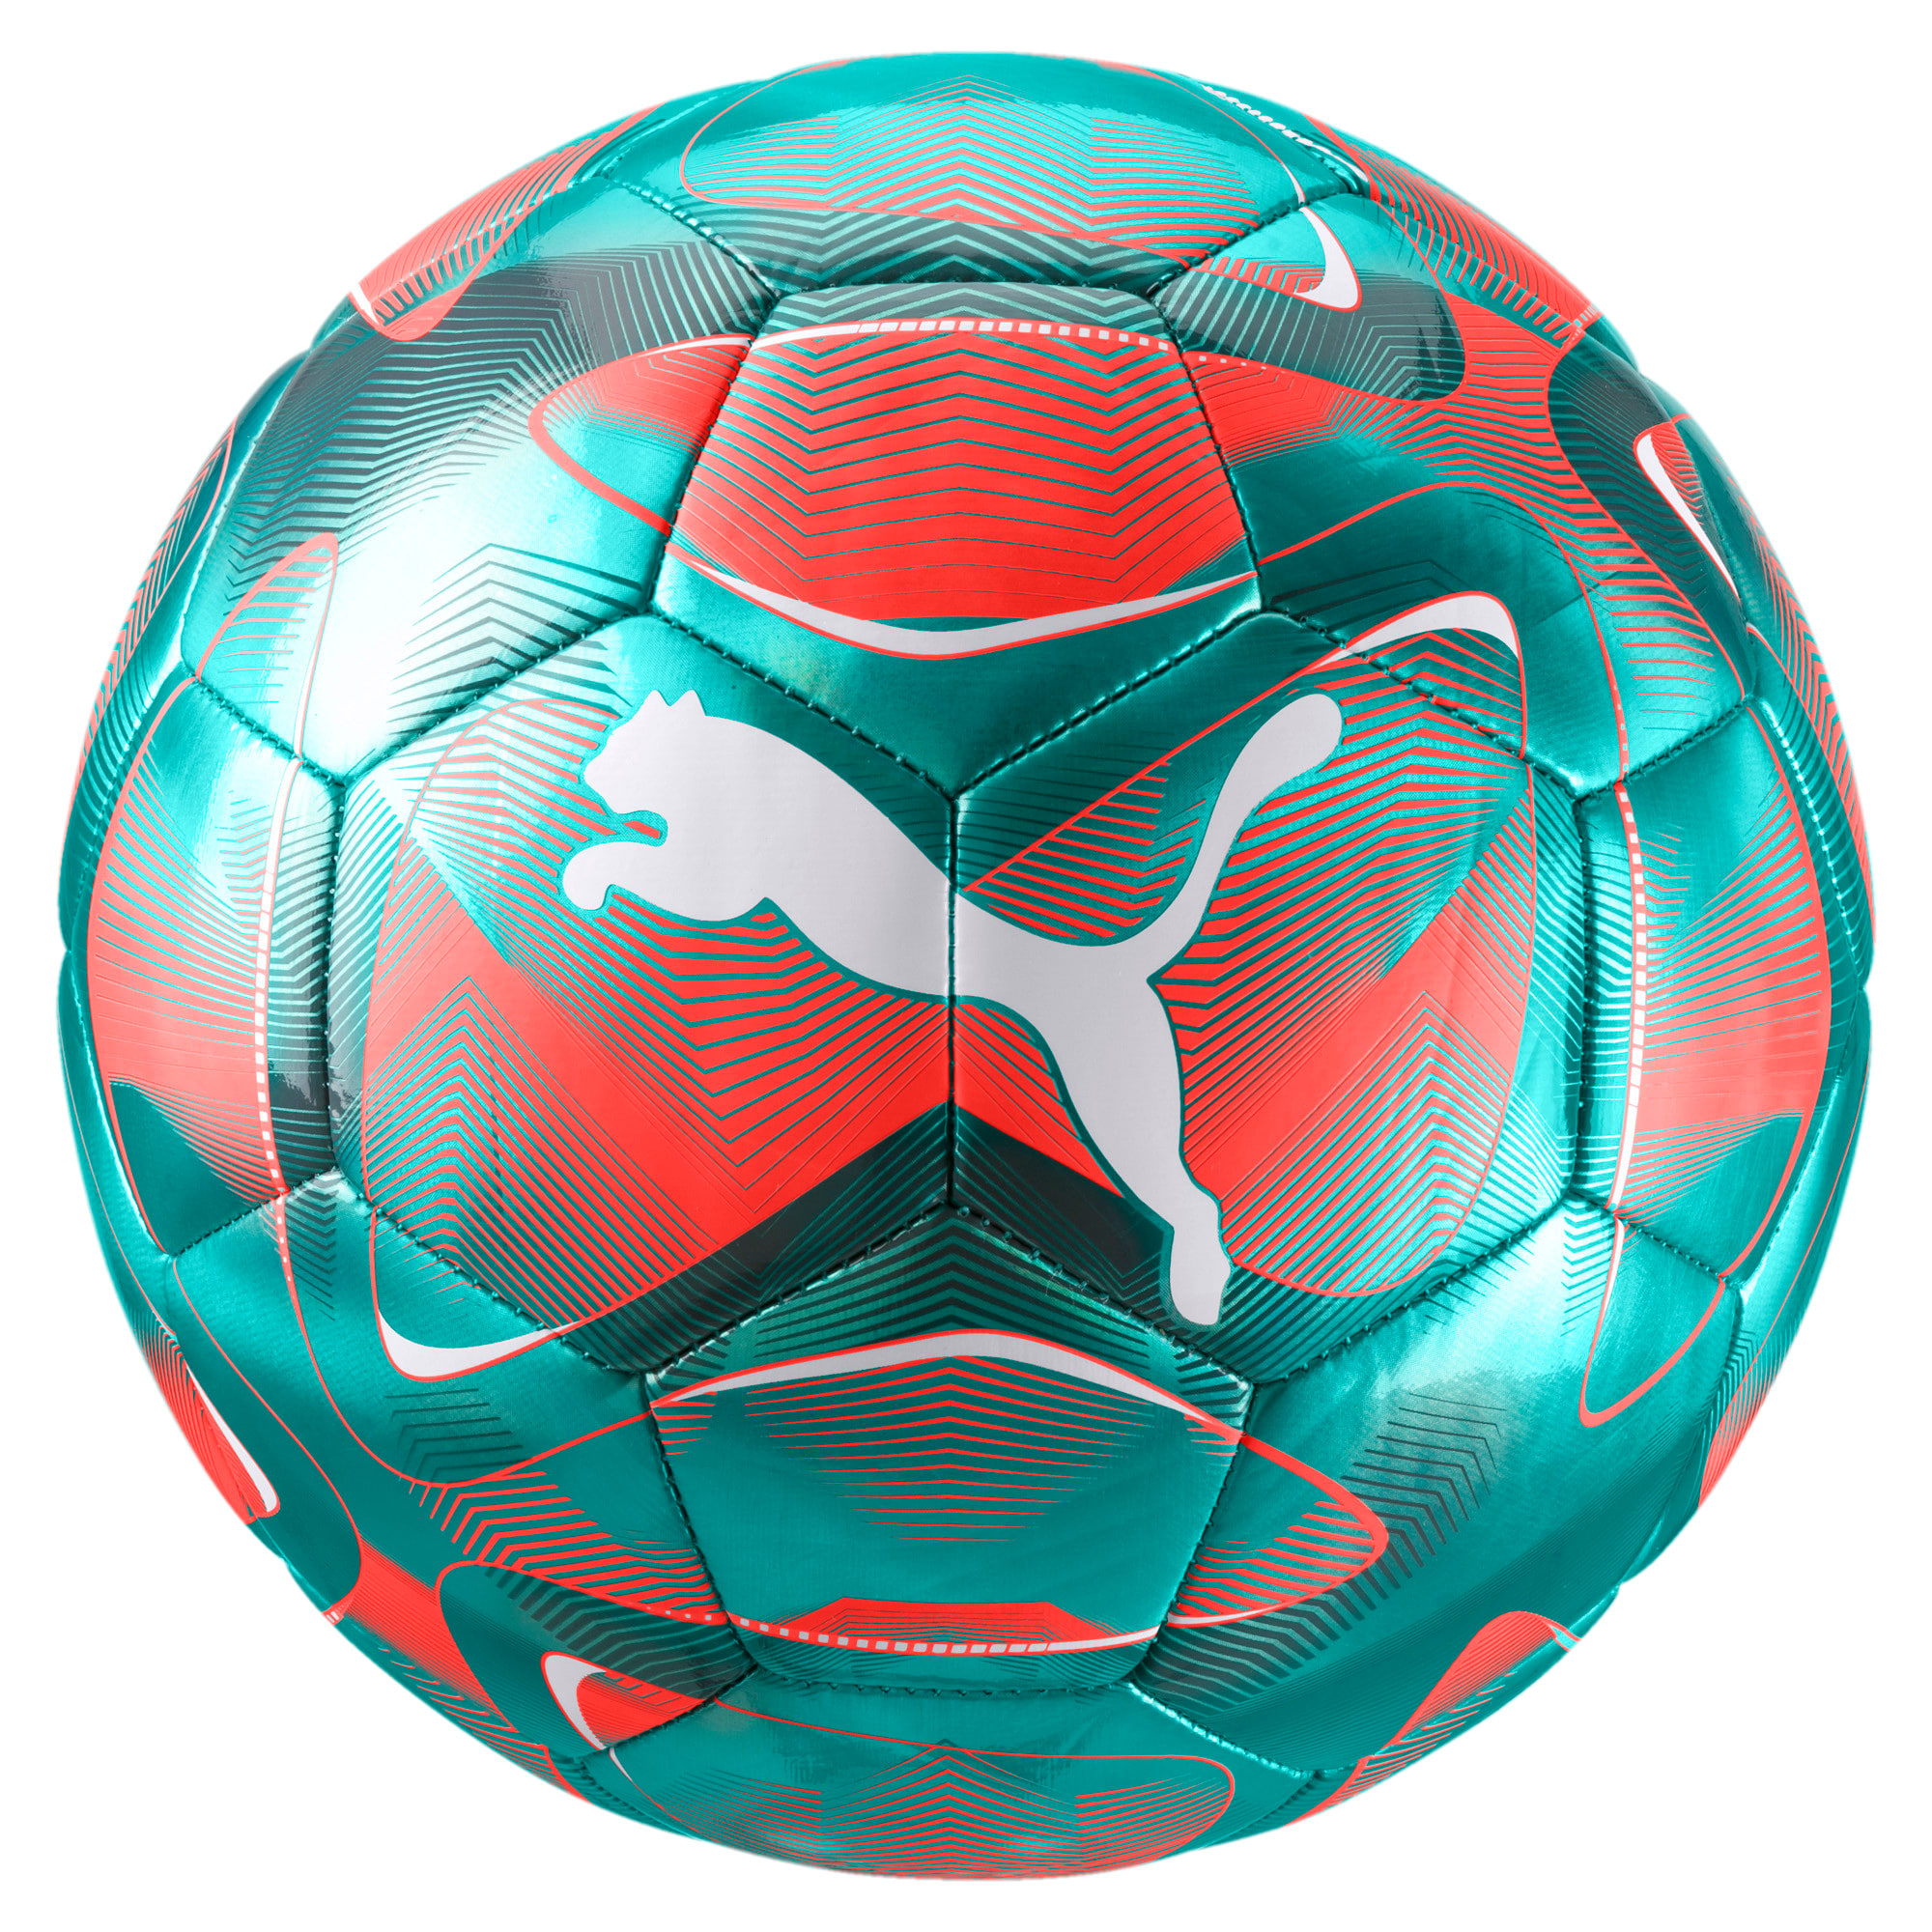 Thumbnail 1 of FUTURE Flash Soccer Ball, Turquoise-Nrgy Red-White, medium